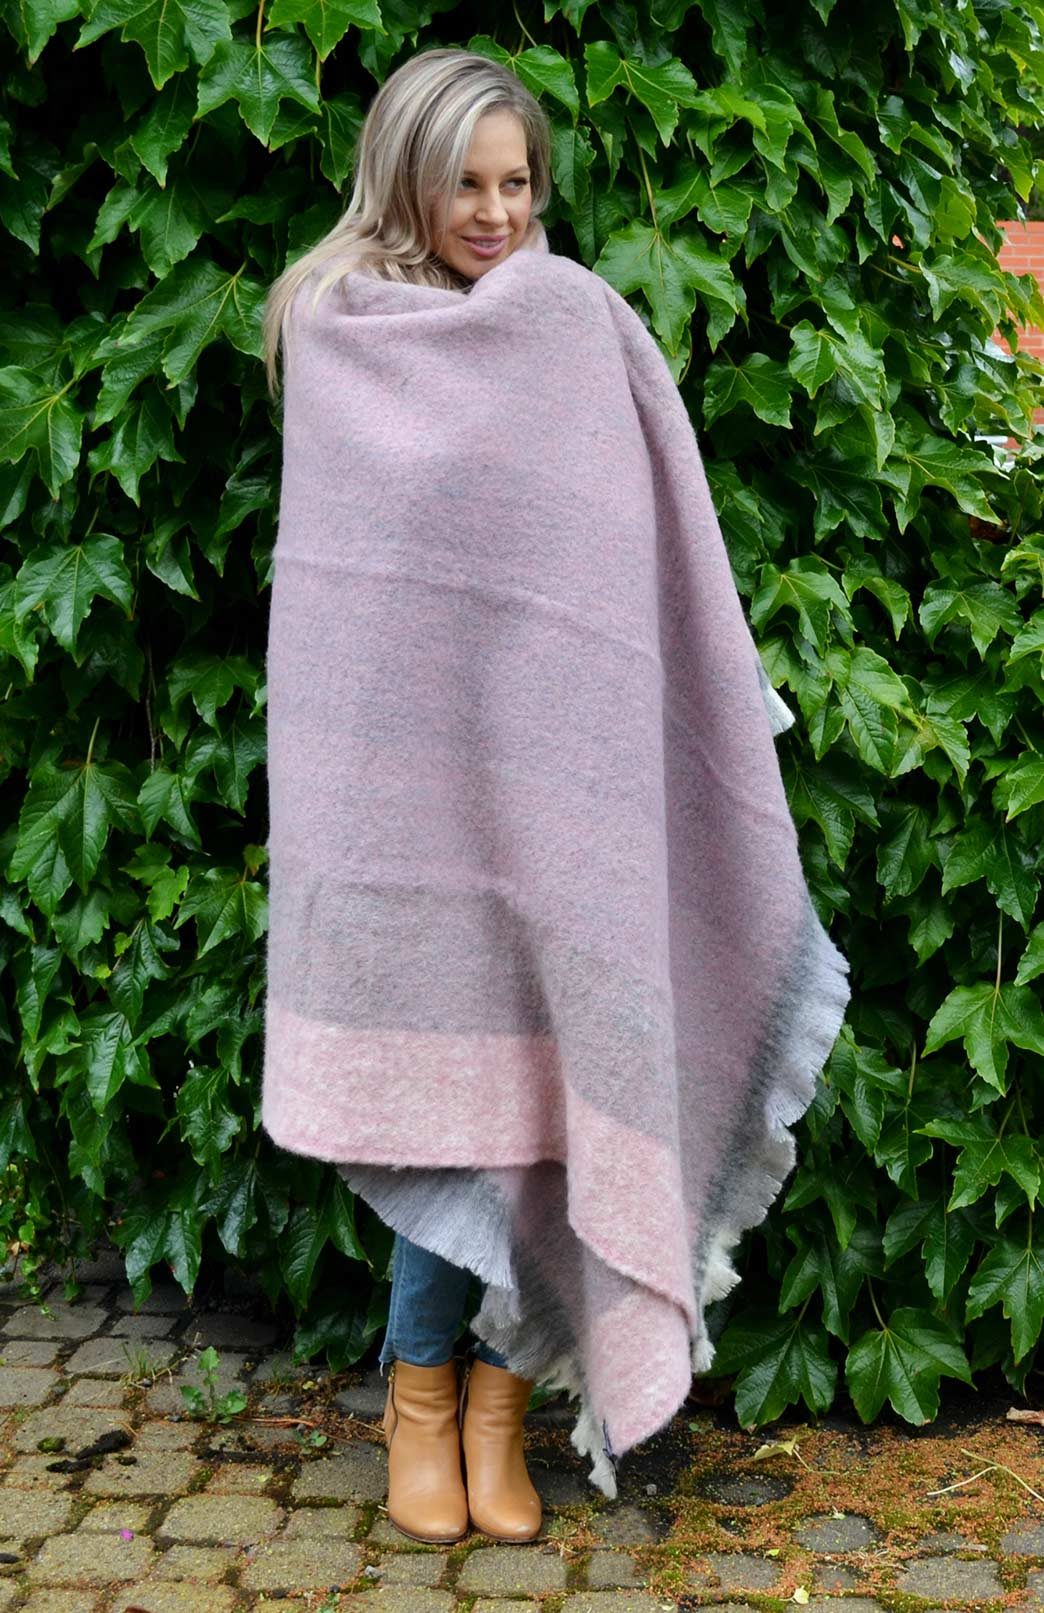 Alpaca Wool Throw Rug - Pure Alpaca Wool Throw Rug Winter Blanket - Smitten Merino Tasmania Australia